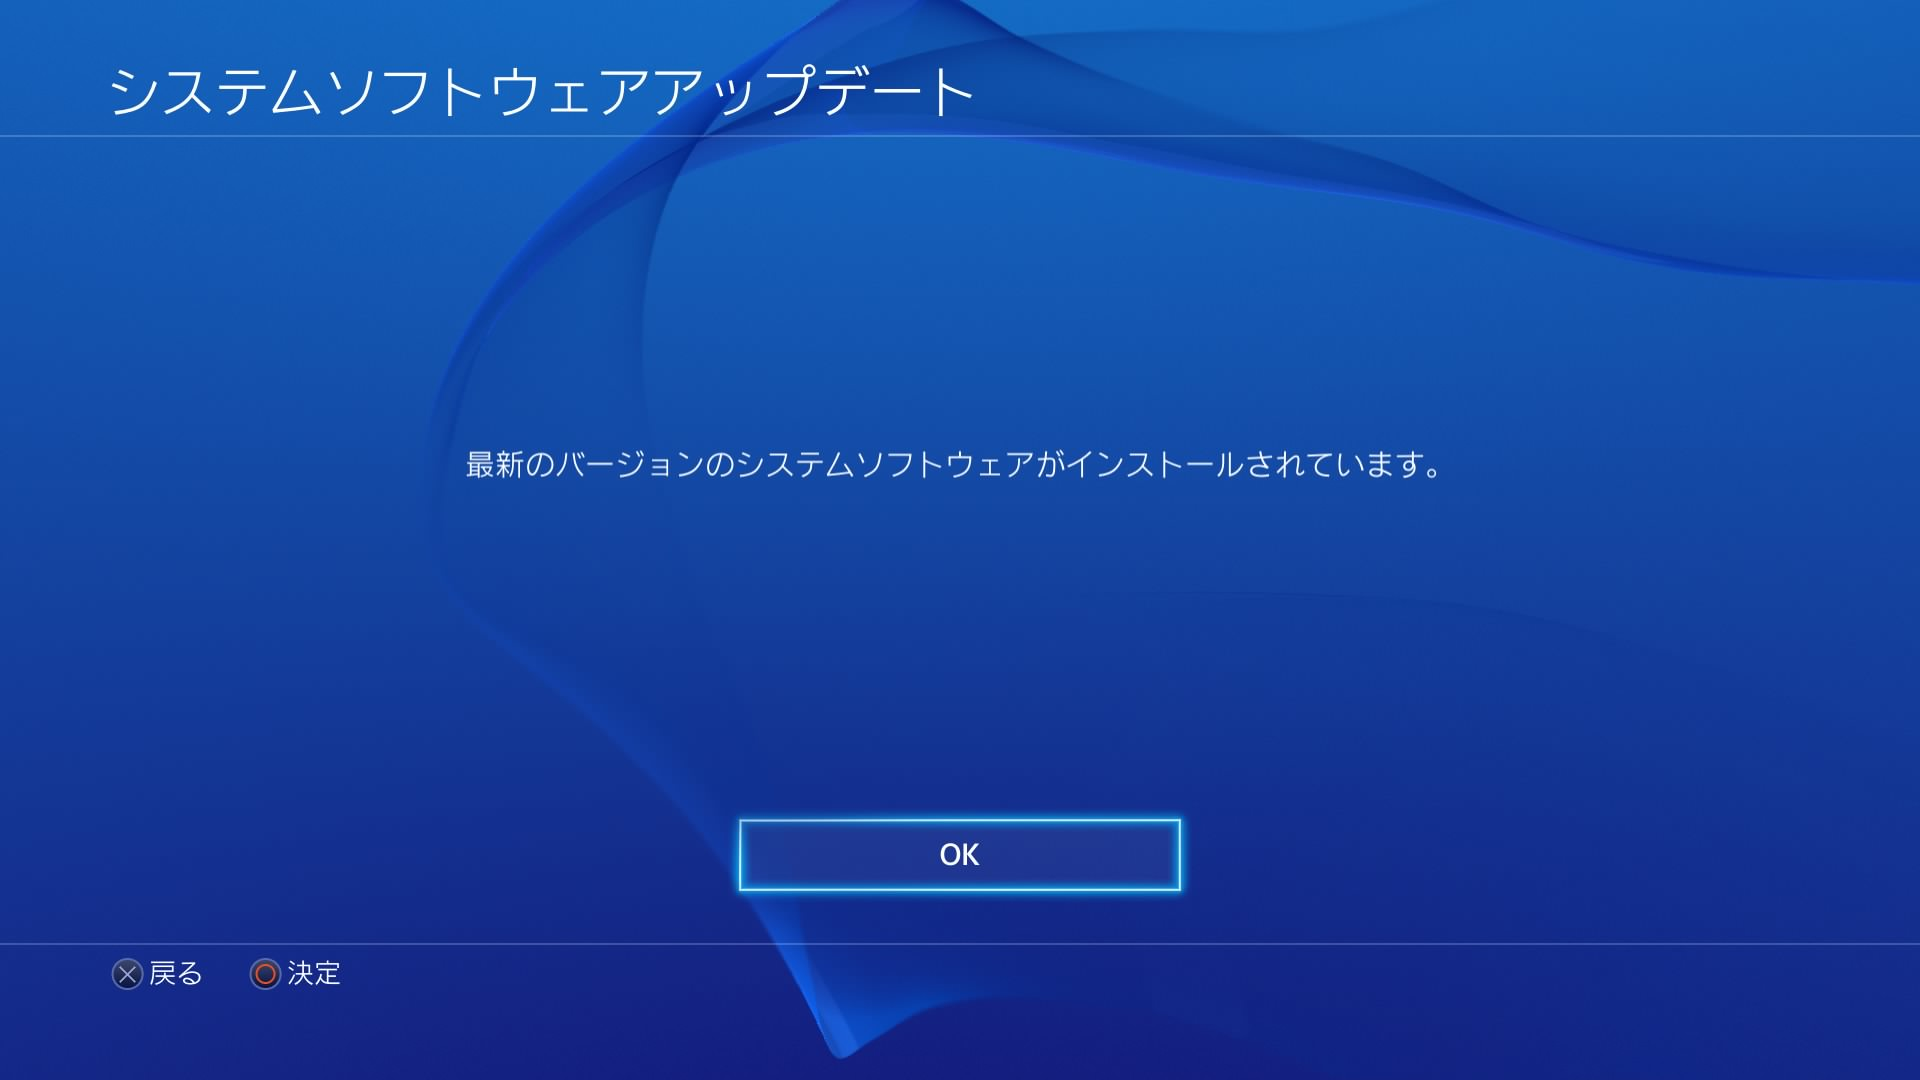 How to set theme of ps4 02